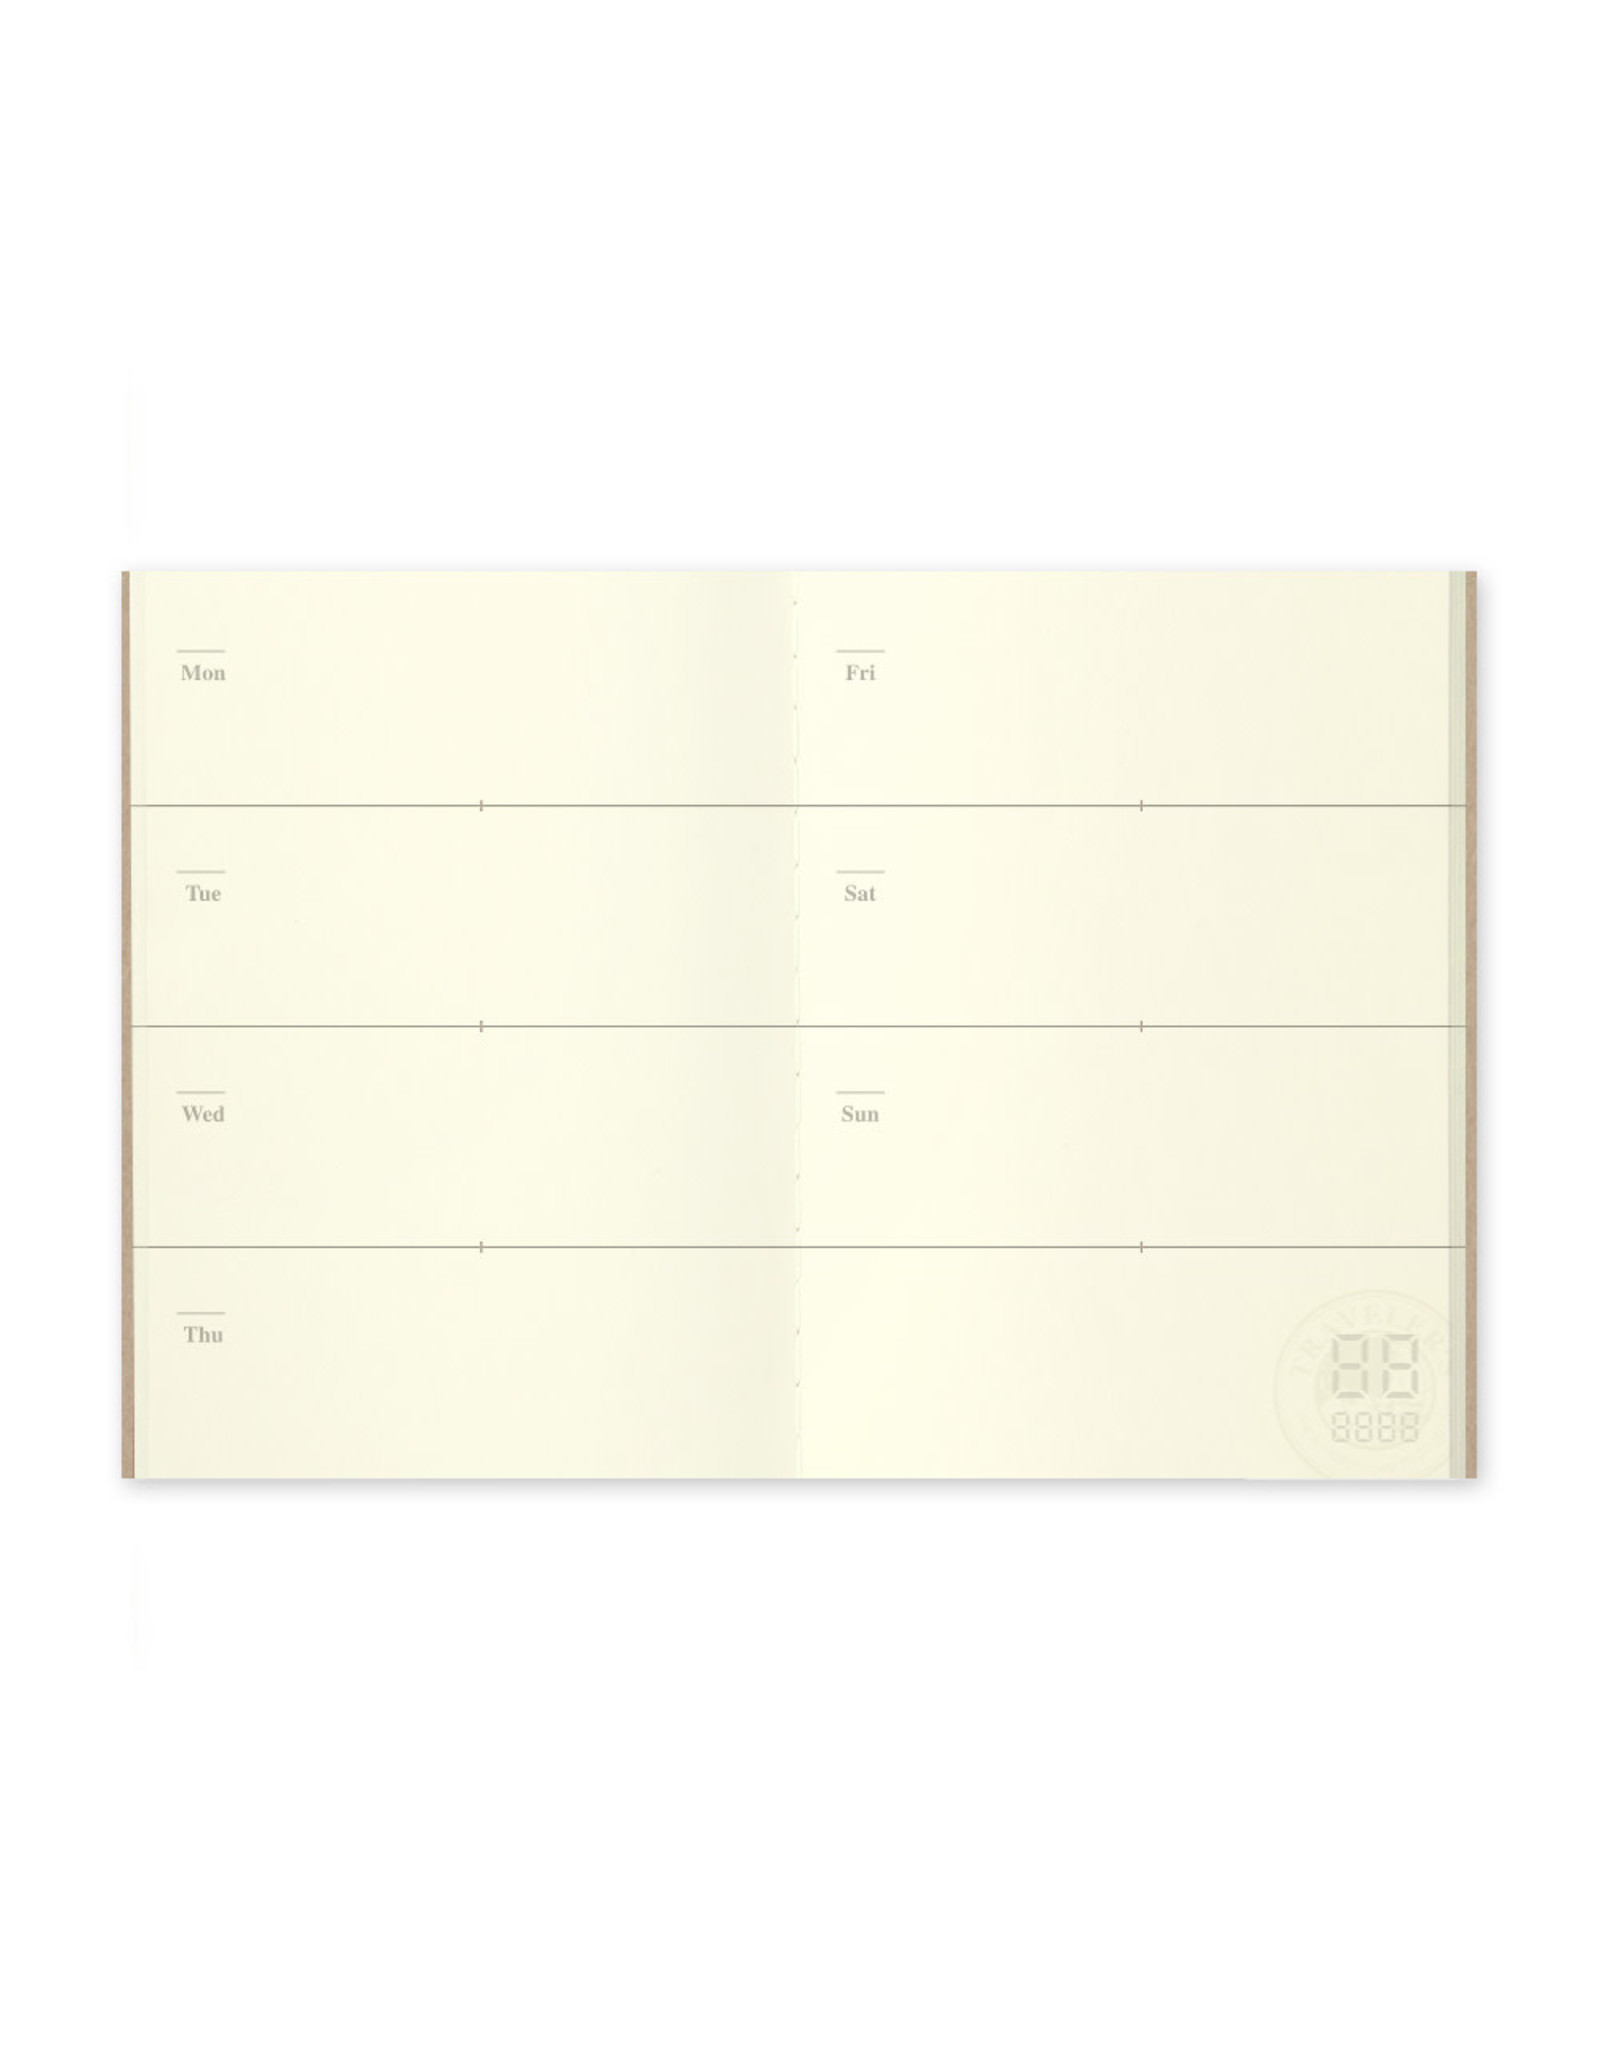 Traveler's Company 007. FREE DIARY WEEKLY MIDORI TRAVELER'S NOTEBOOK PASSPORT SIZE